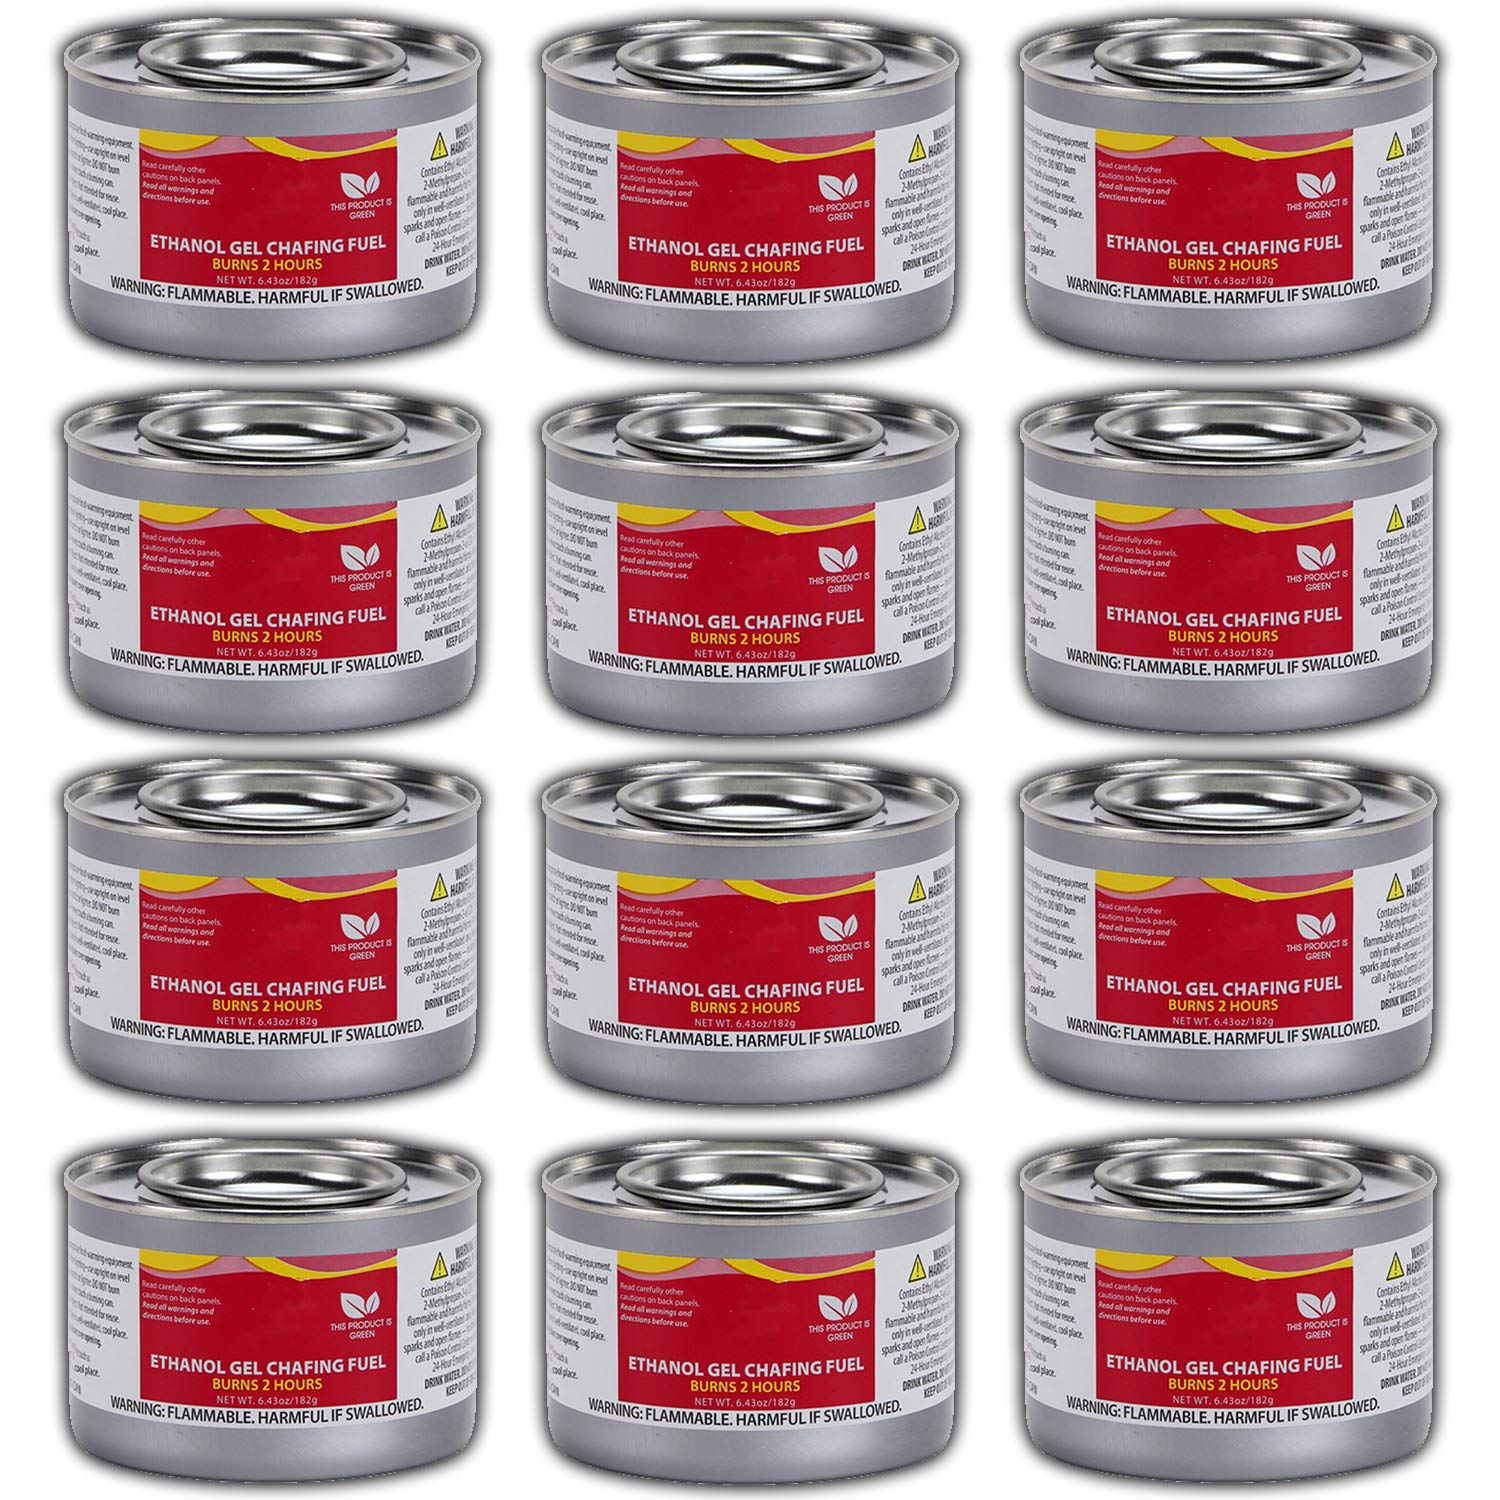 Chafing Dish Fuel Cans - Includes 12 Ethanol Gel Chafing Fuels, Burns for 2 Hours (6.43 OZ) for your Cooking, Food Warming, Buffet and Parties. by HeroFiber